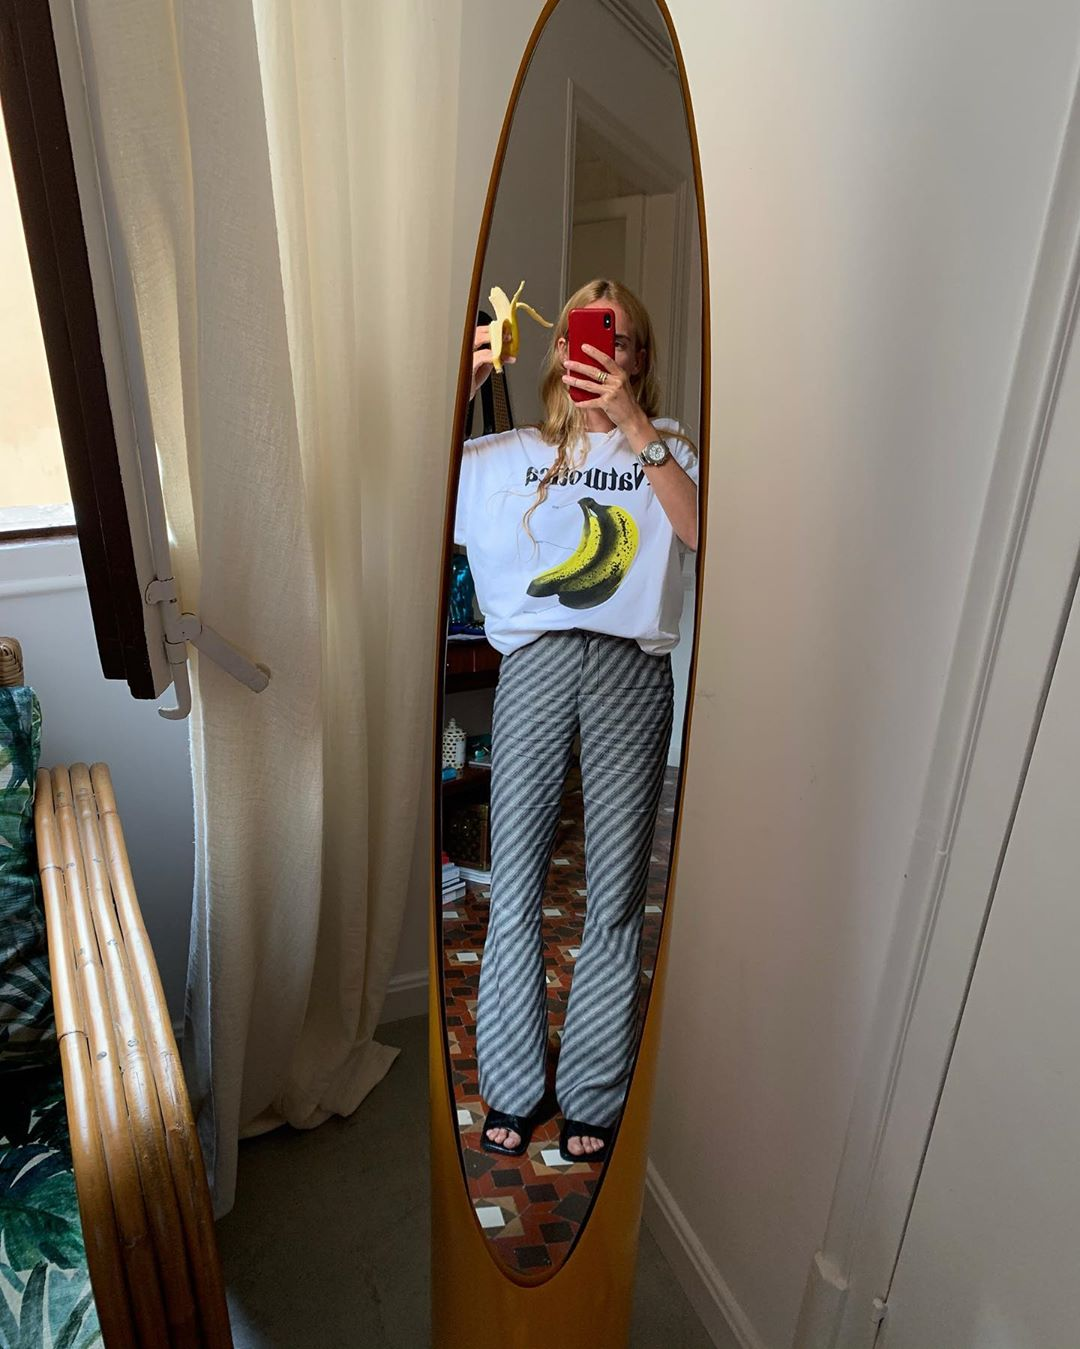 blanca-miro-christopher-kane-banana-t-shirt-instagram